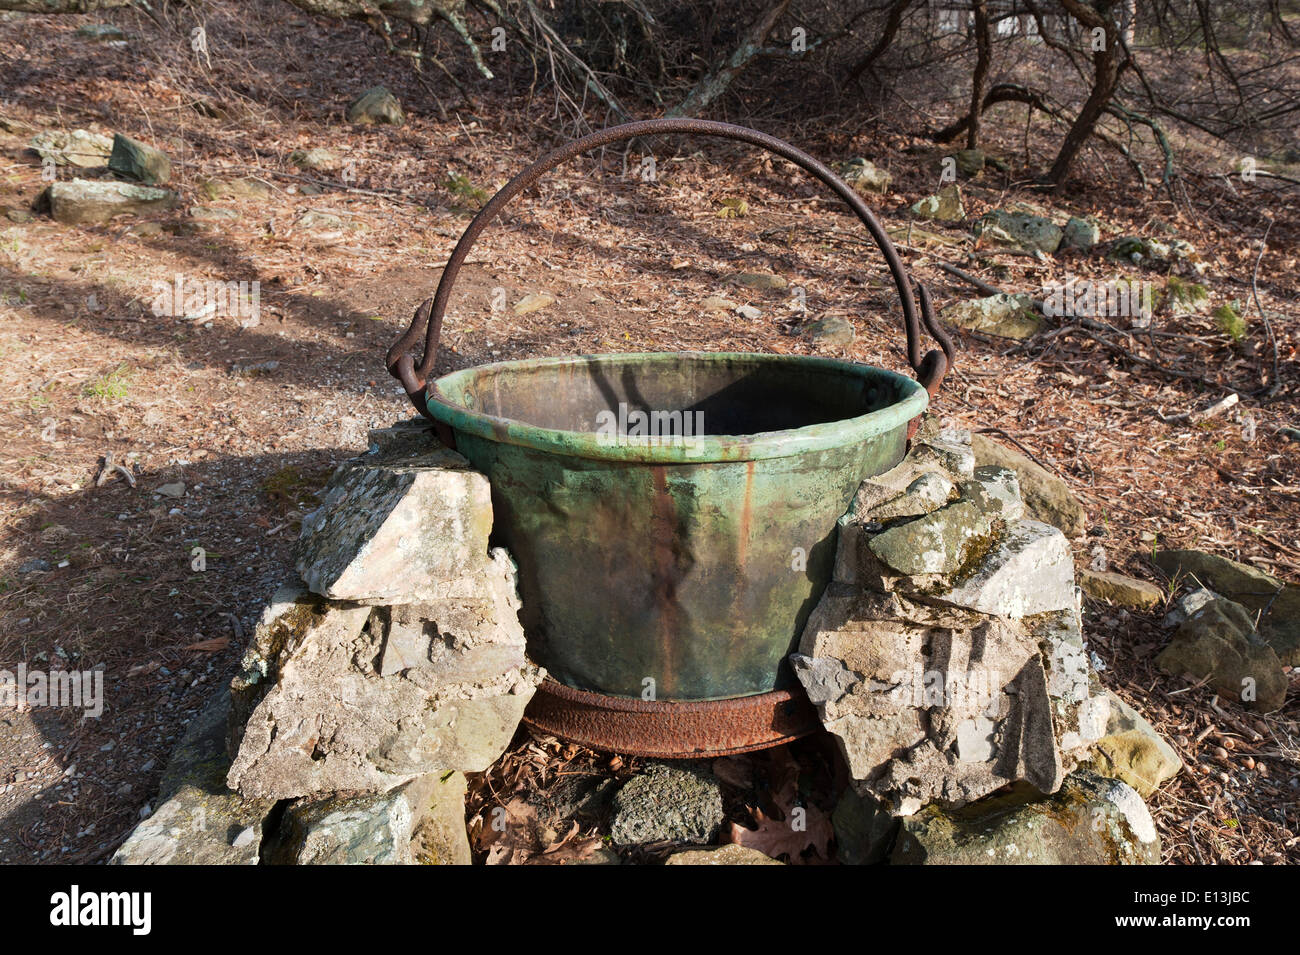 Old copper cauldron resting on a fire pit. - Stock Image